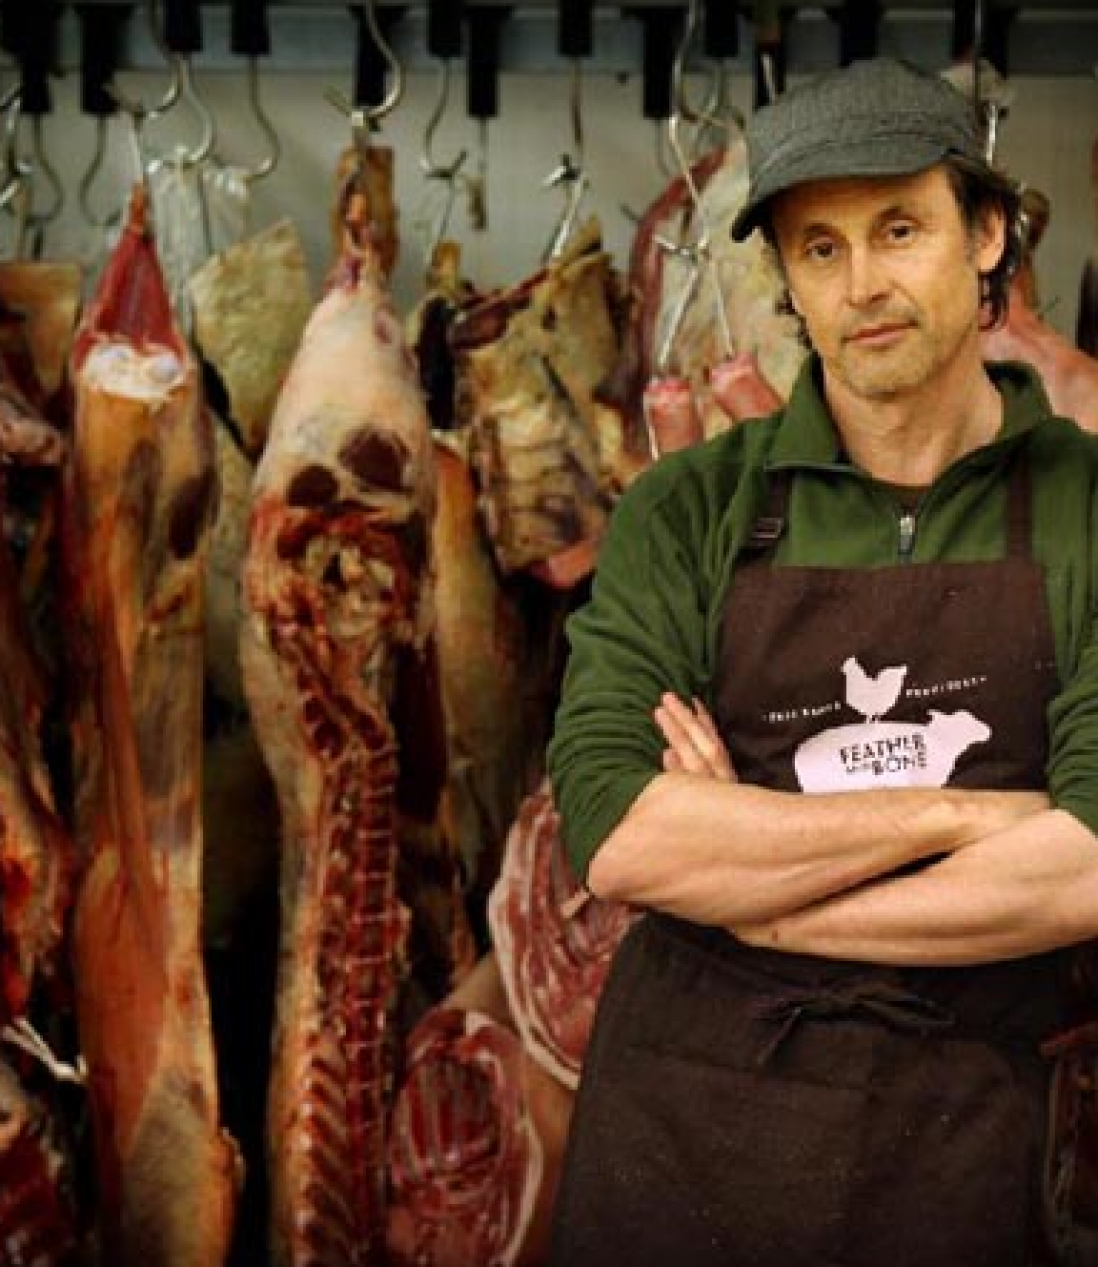 Butcher standing in front of carcasses